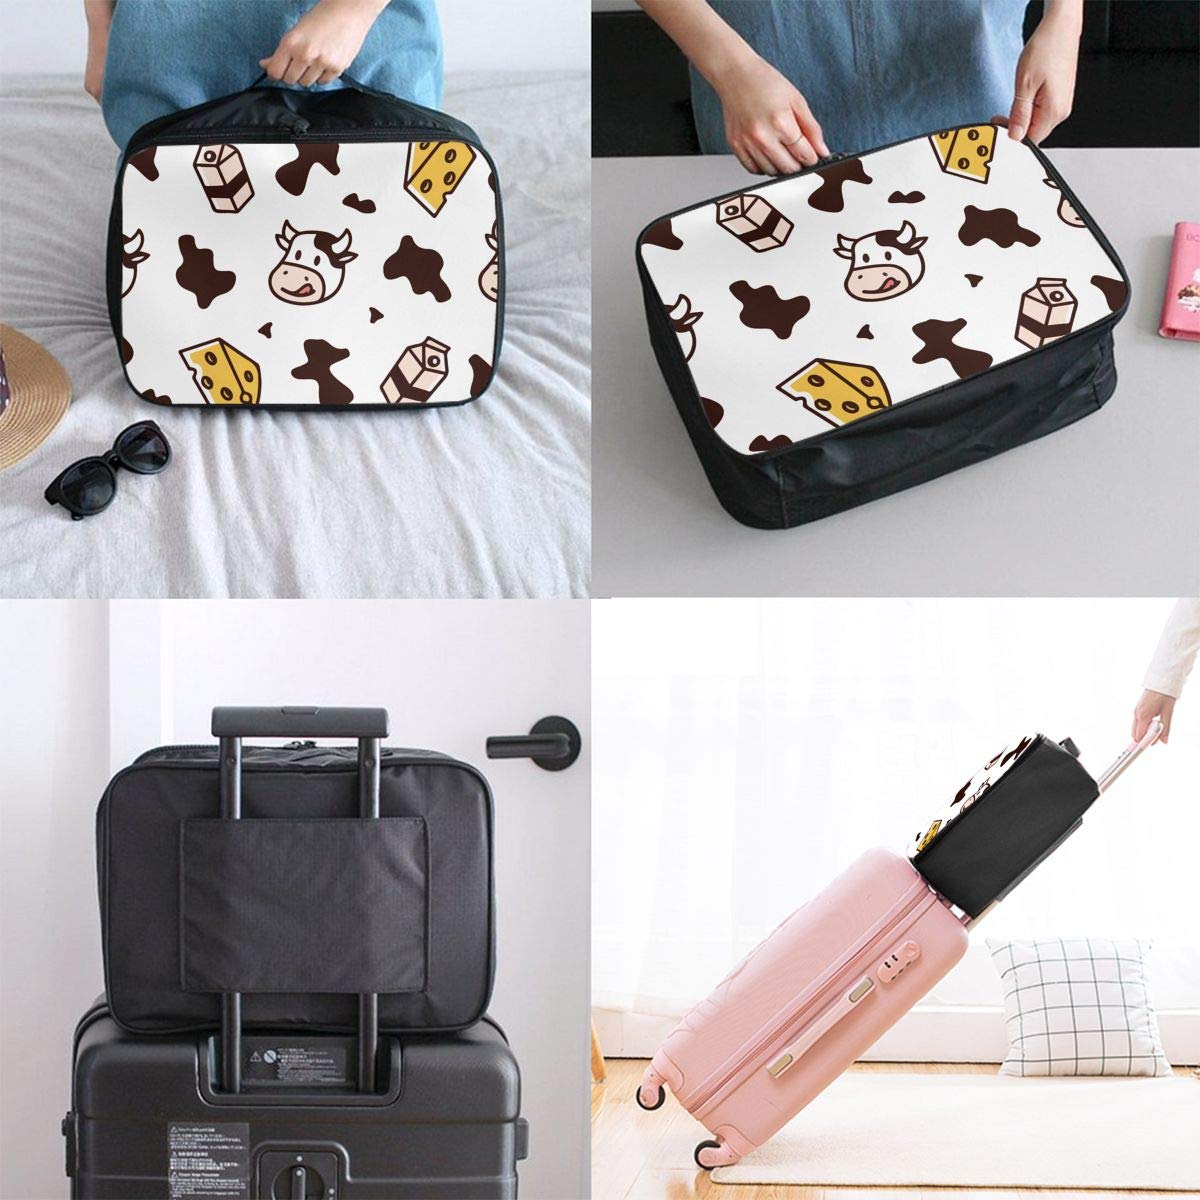 YueLJB Cow Cheese Pattern Lightweight Large Capacity Portable Luggage Bag Travel Duffel Bag Storage Carry Luggage Duffle Tote Bag